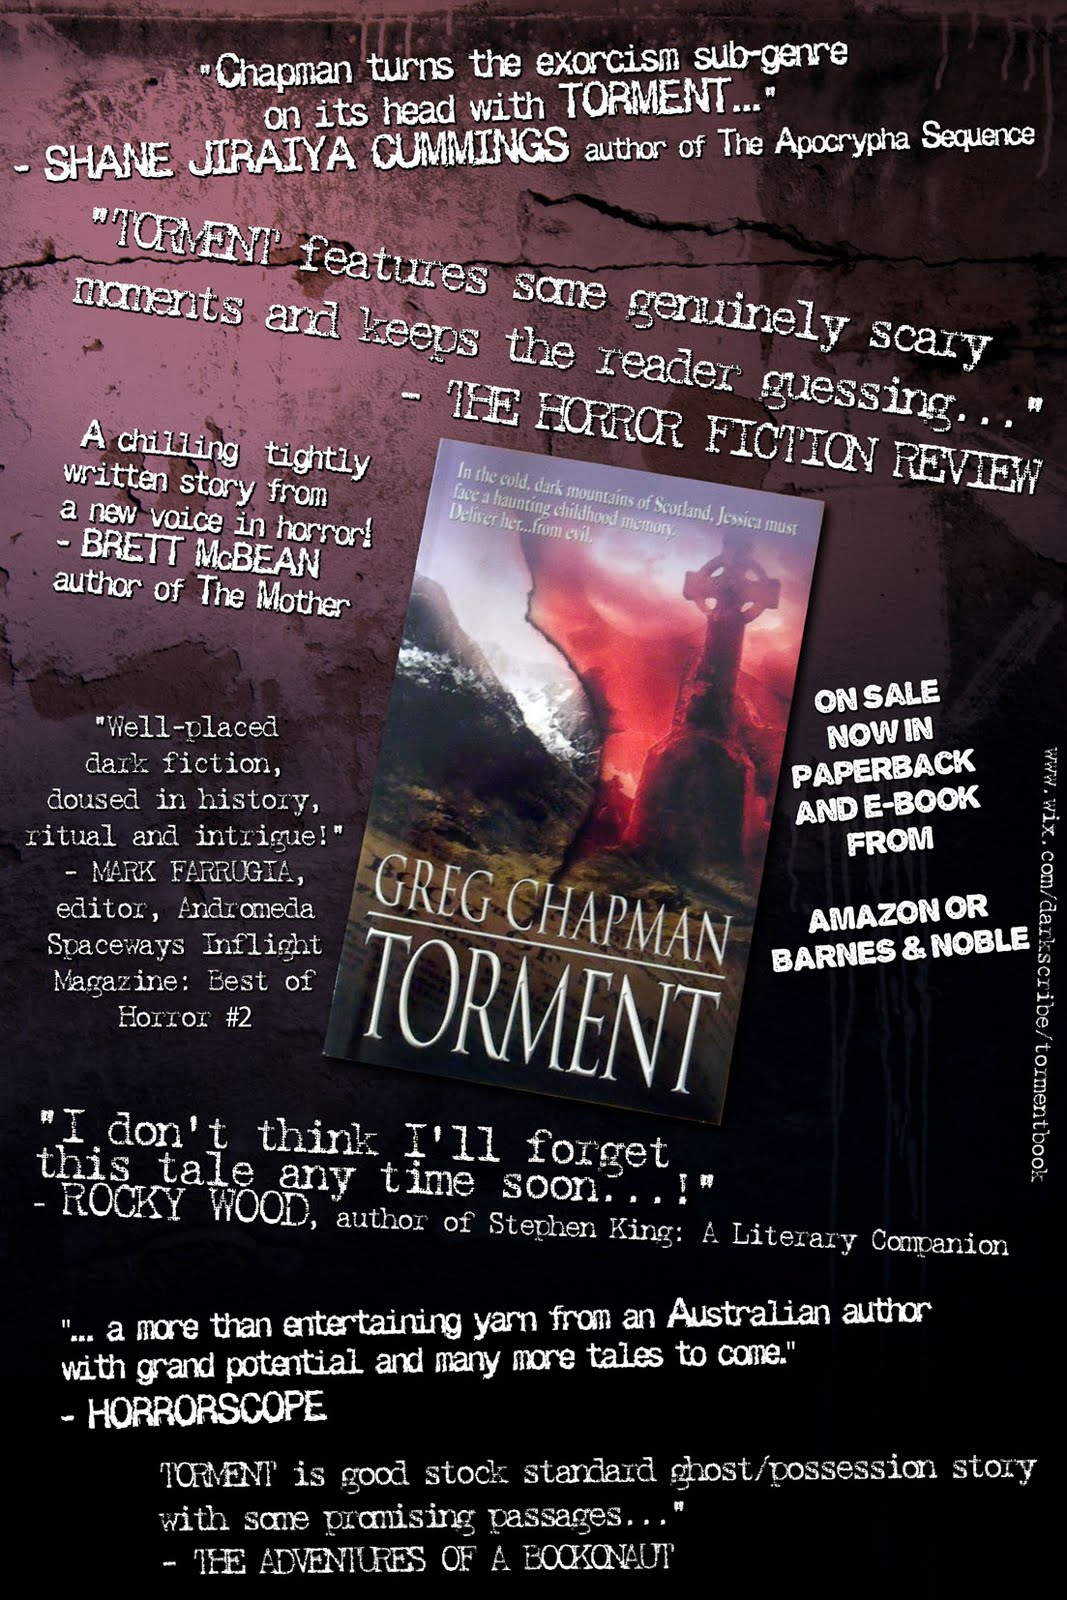 testimonial poster If you want to help promote bizarro fiction, then an easy and effective way ...